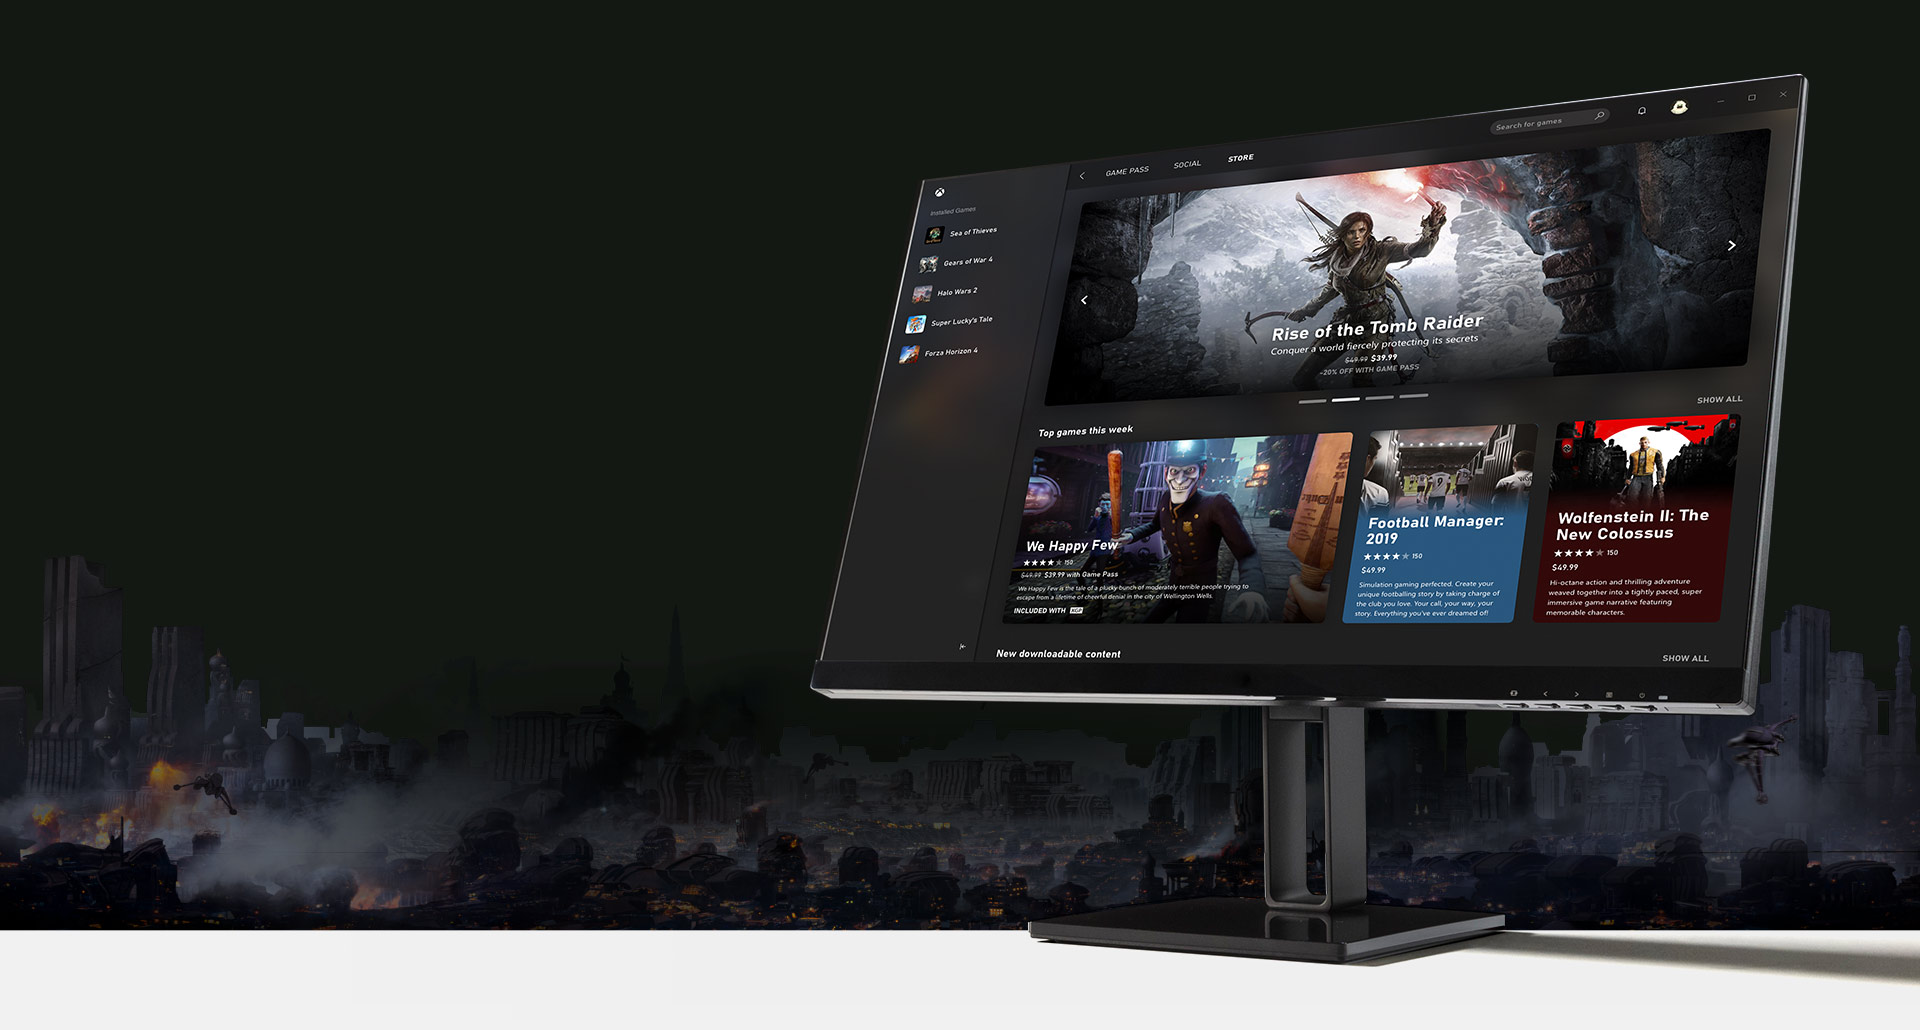 Monitor de computador com a interface do usuário do aplicativo para PC do Xbox Game Pass exibido